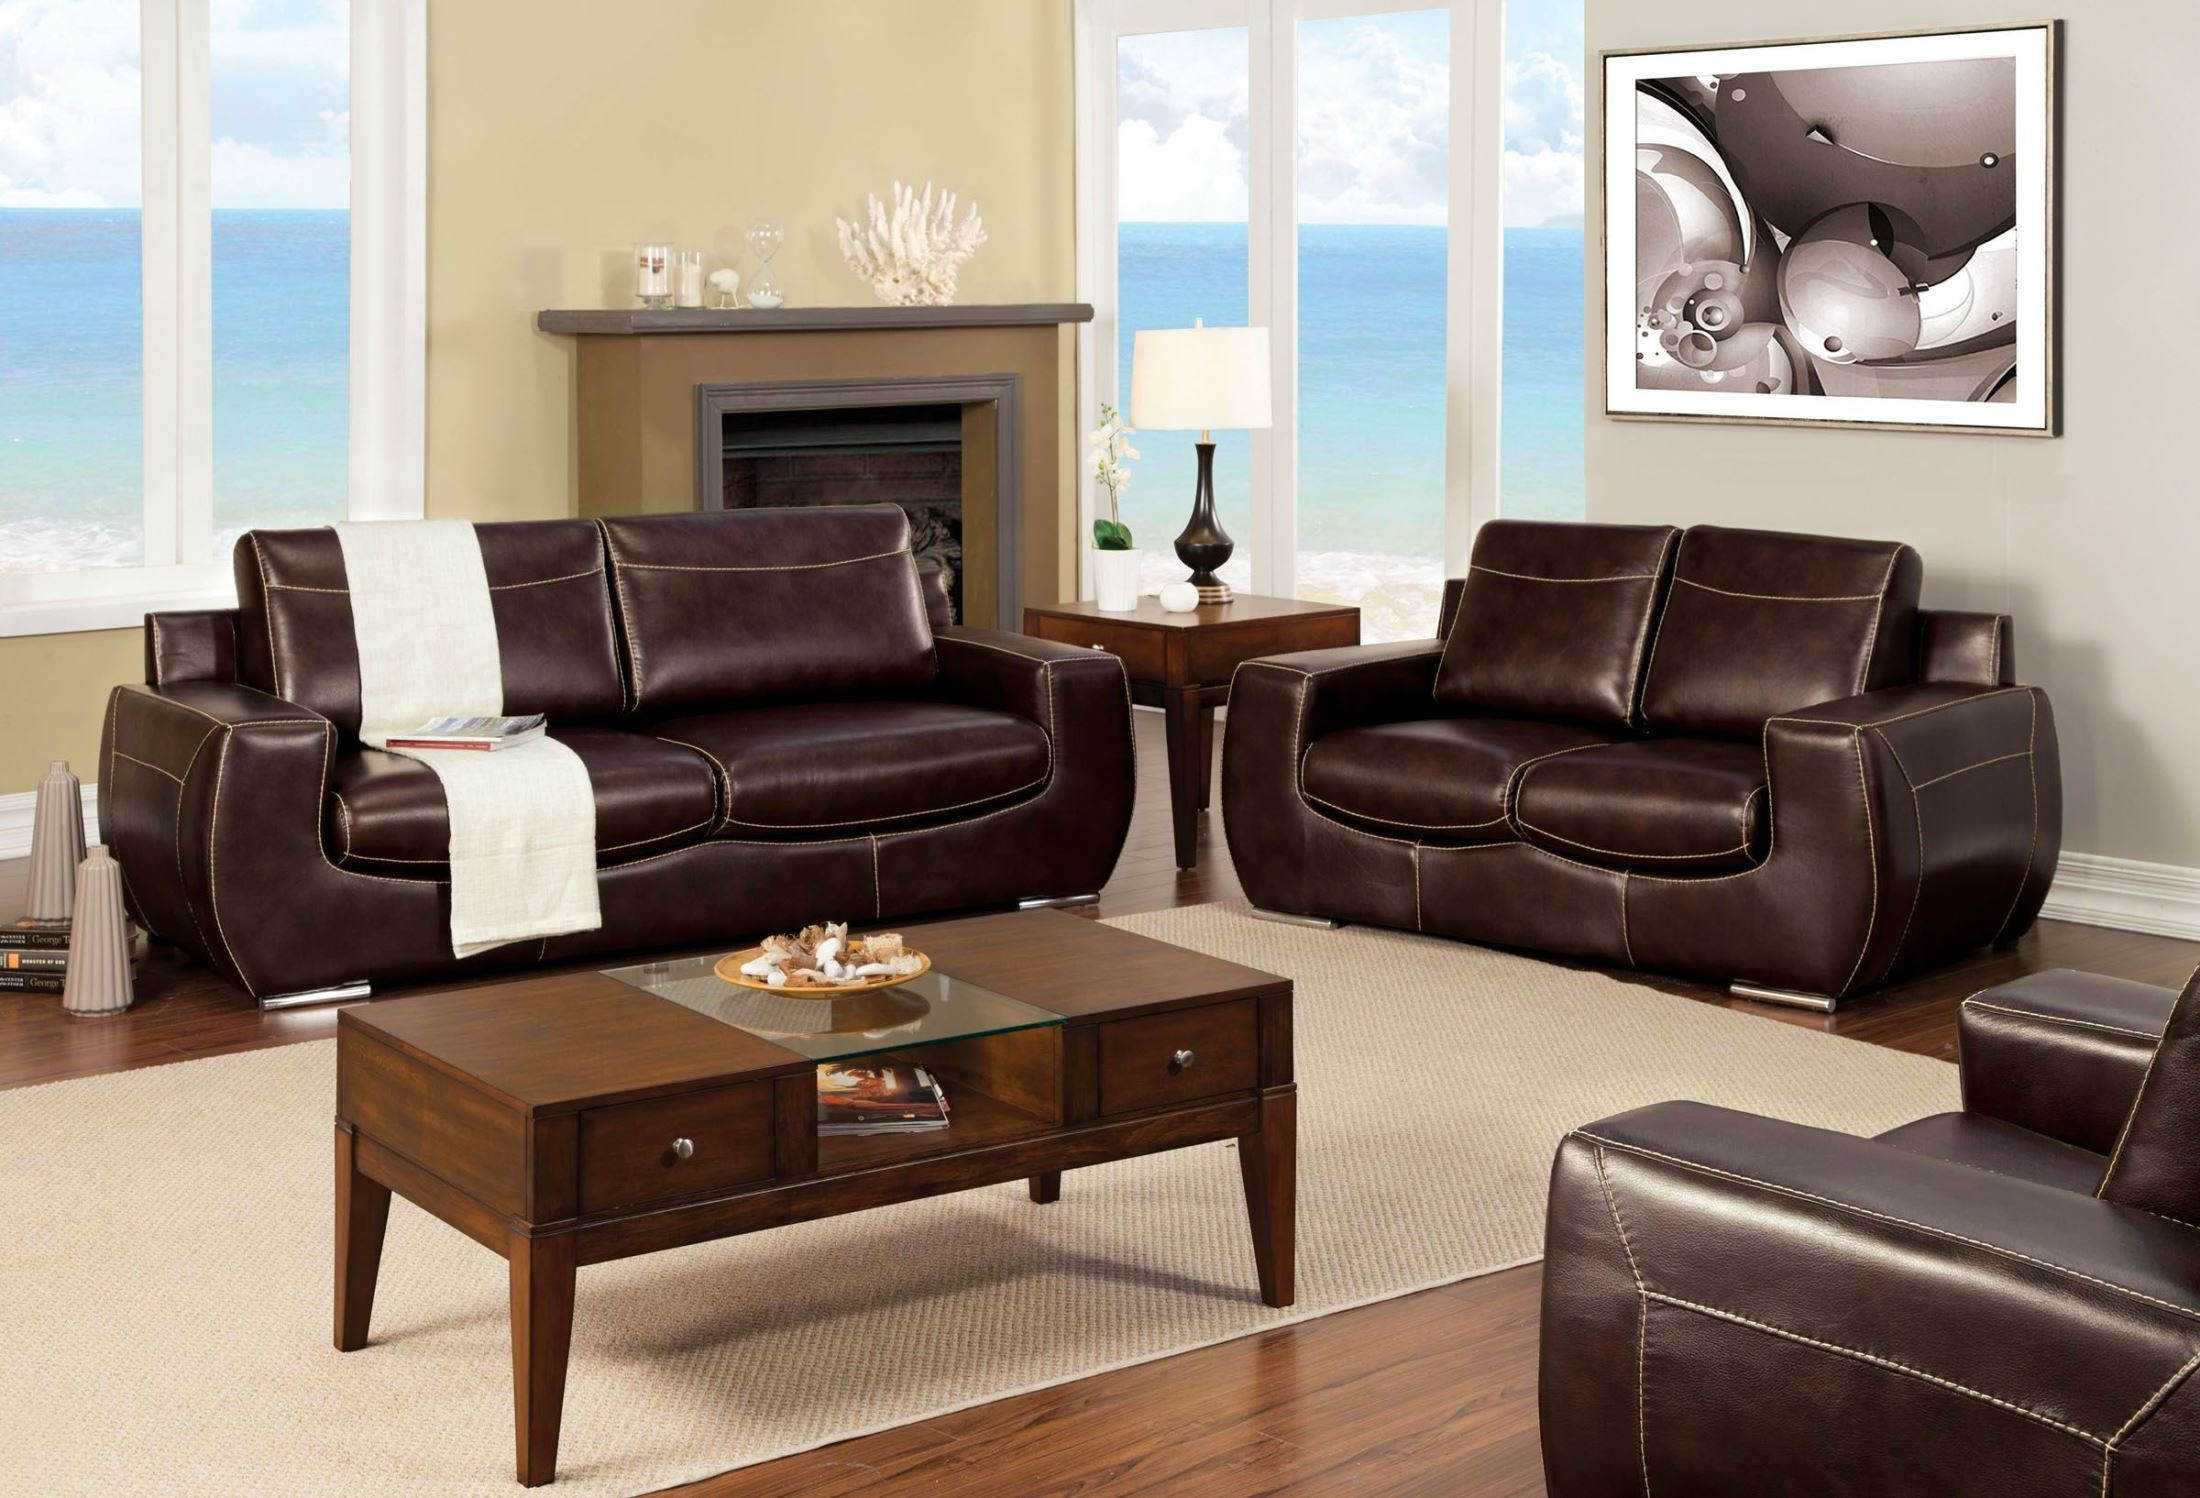 Tekir espresso living room set from furniture of america for M s living room furniture